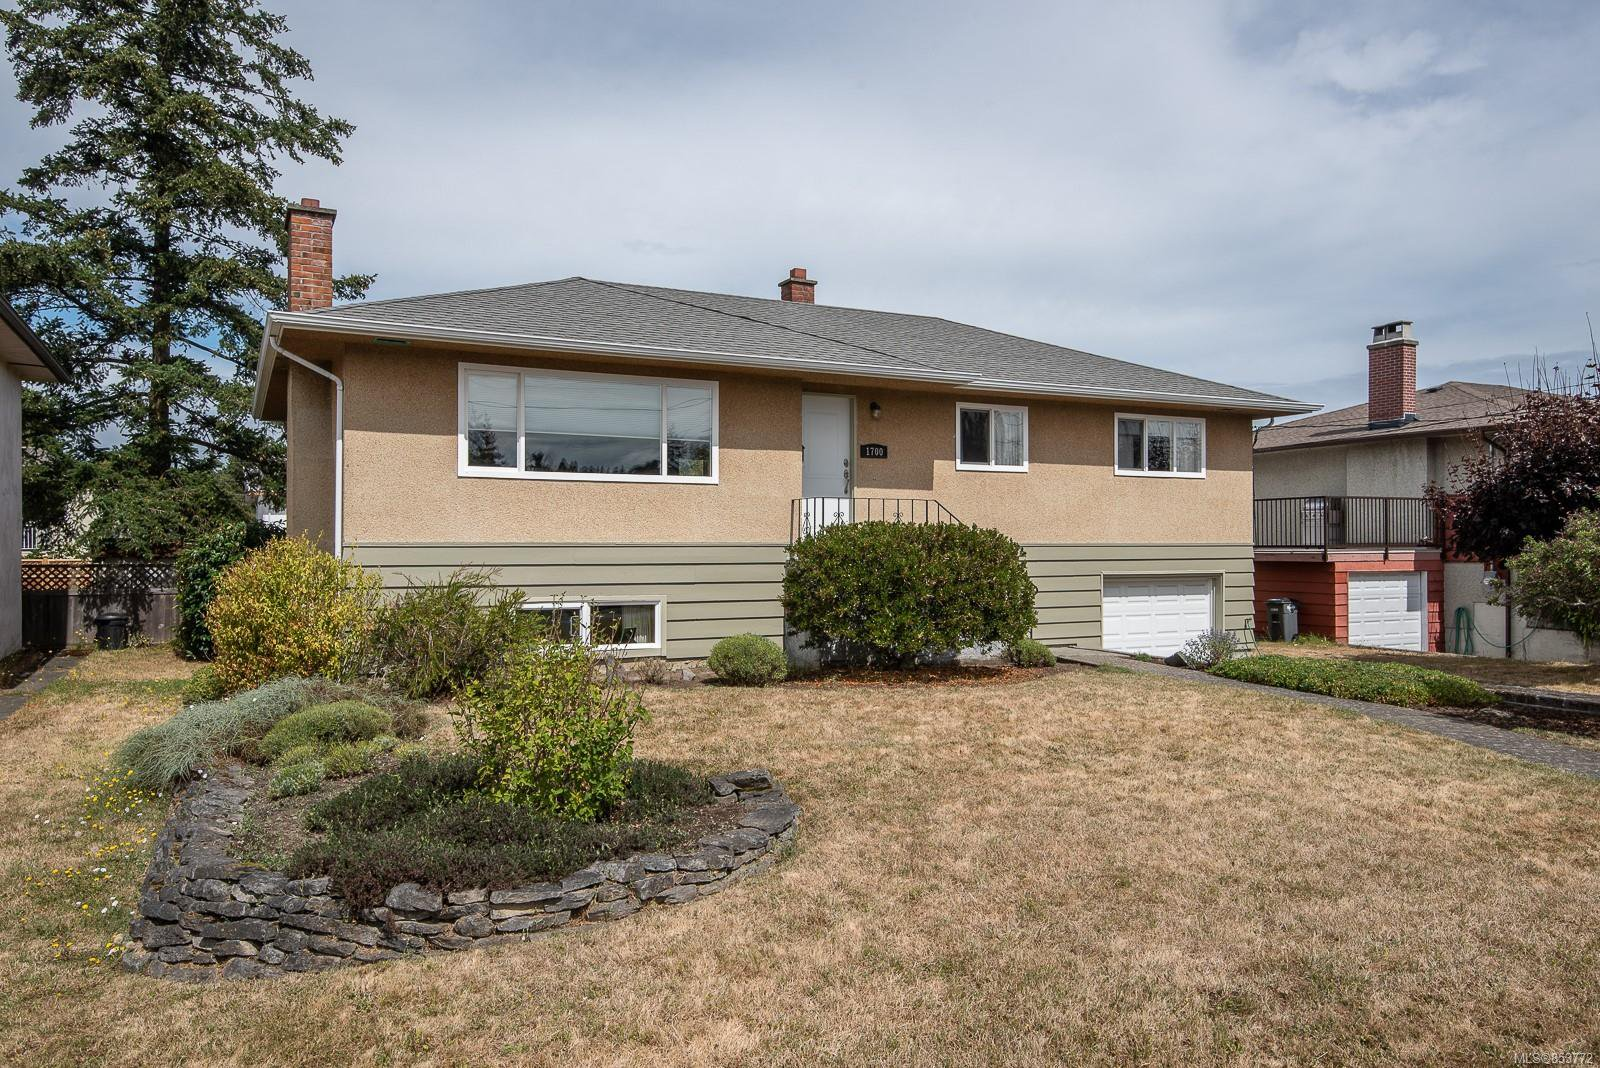 Main Photo: 1700 Sheridan Ave in : SE Mt Tolmie House for sale (Saanich East)  : MLS®# 853772